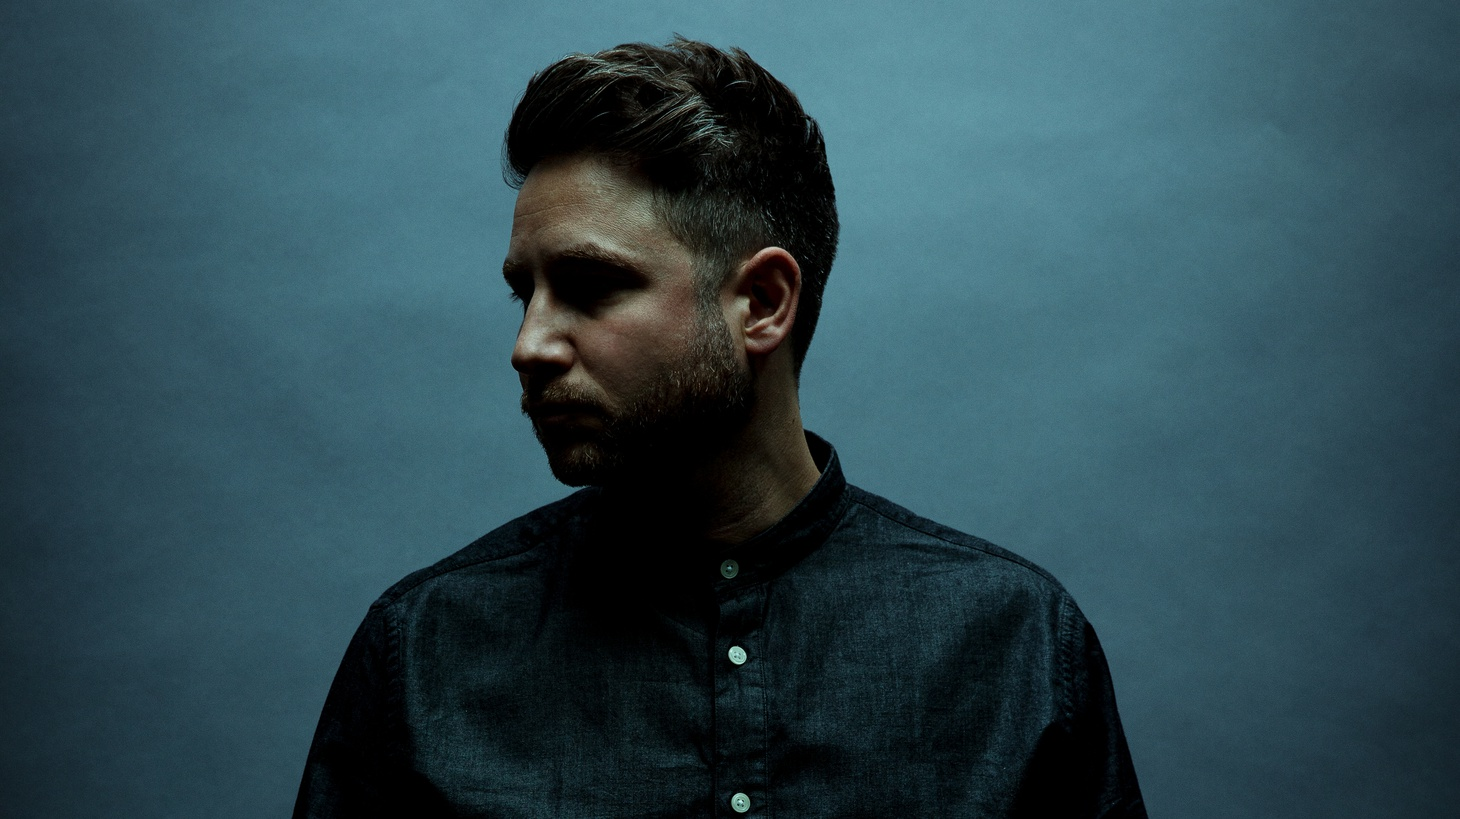 It's been eight years since DJ/producer Enzo Siragusa founded Fuse, a underground London-based event series and record label that has carved out a spot in the worldwide techno and house movement.